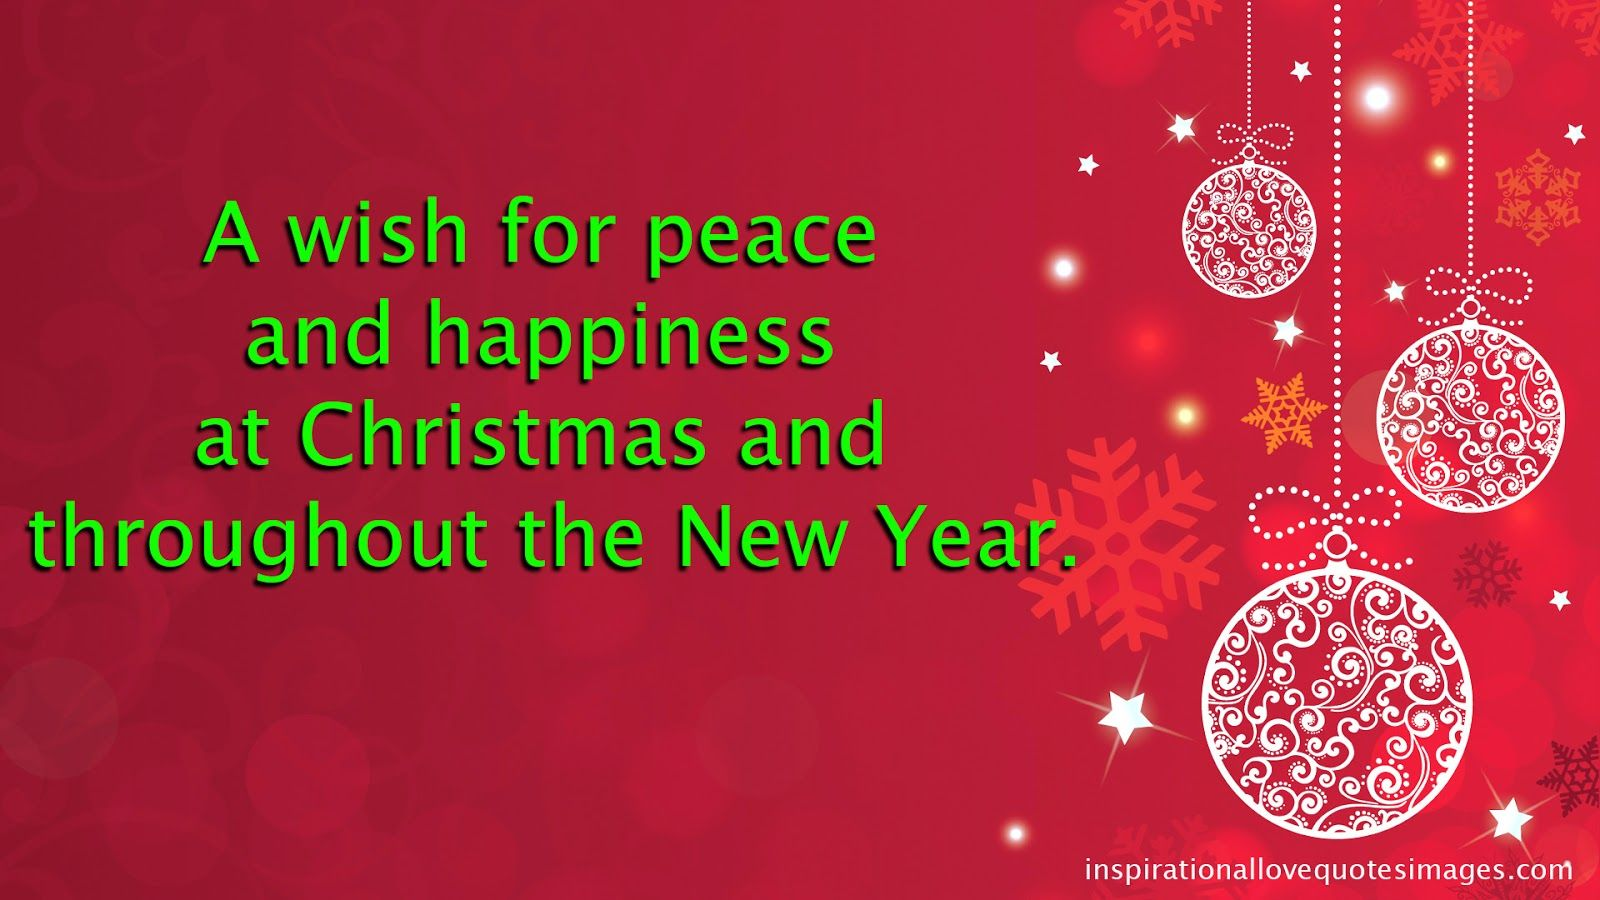 Top 30 Merry Christmas Greetings Quotes Inspirational Love